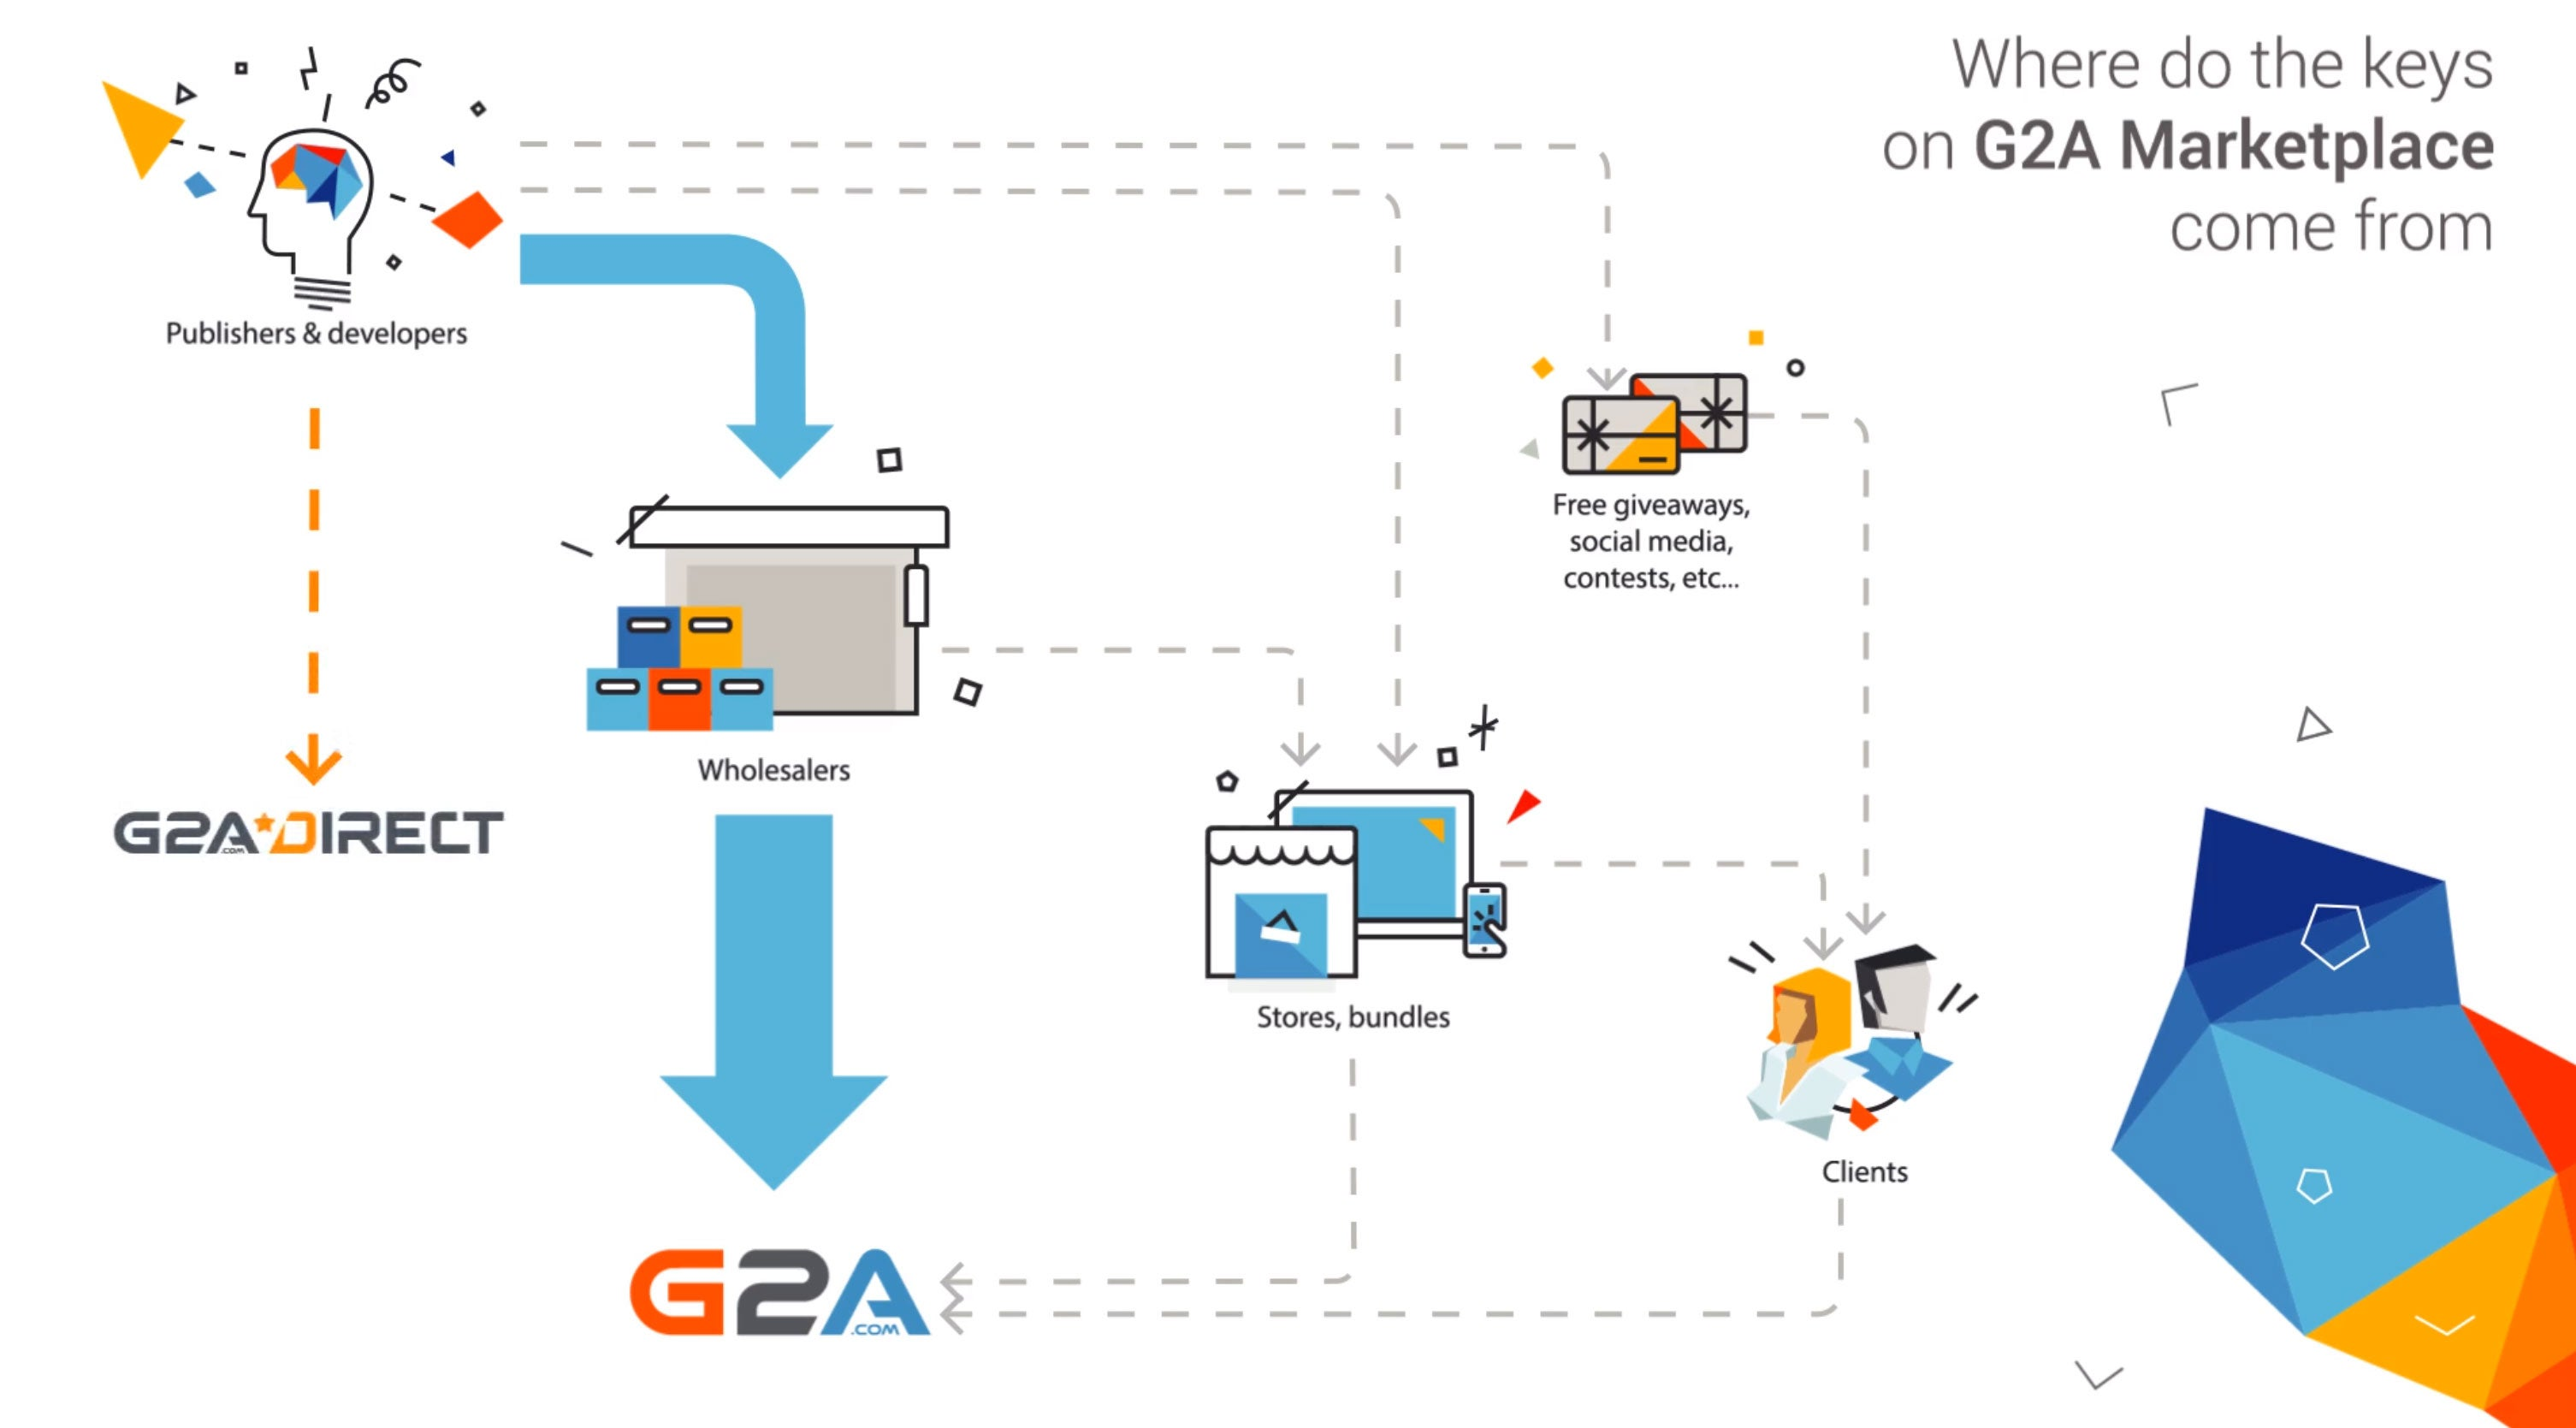 Shady Key Reseller G2A Fucks Up Spectacularly